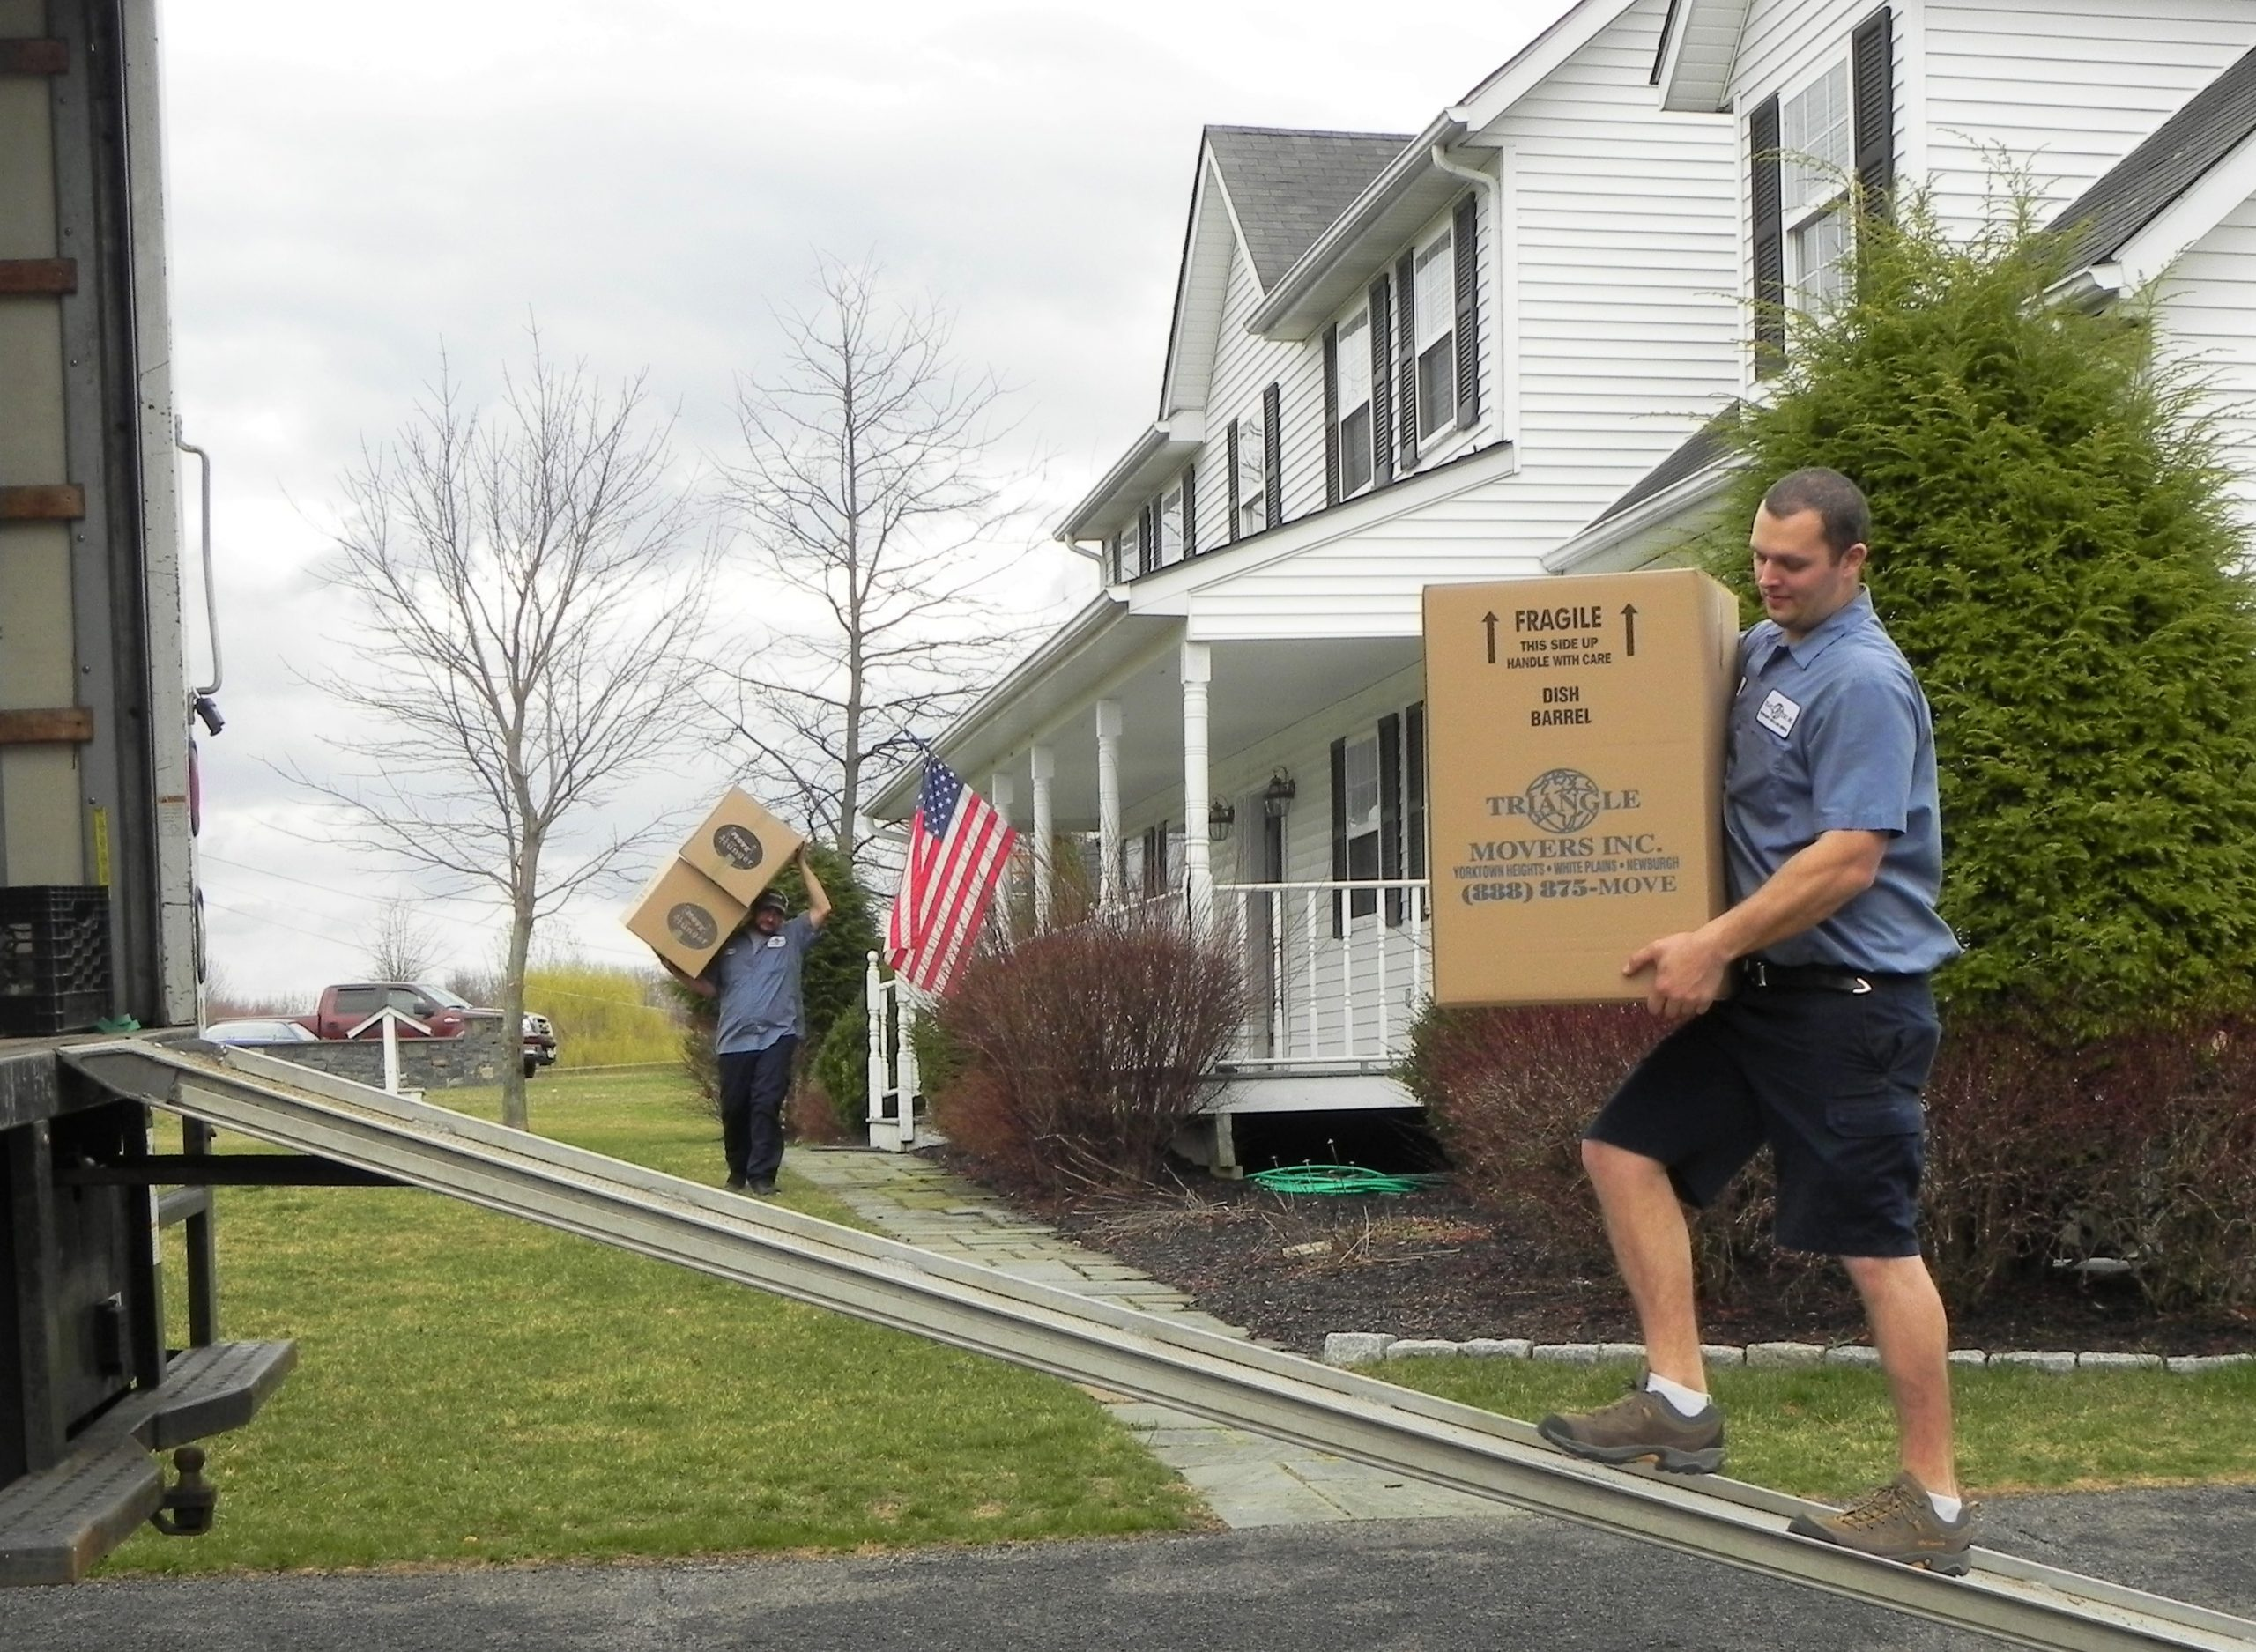 Triangle Movers loading a moving truck